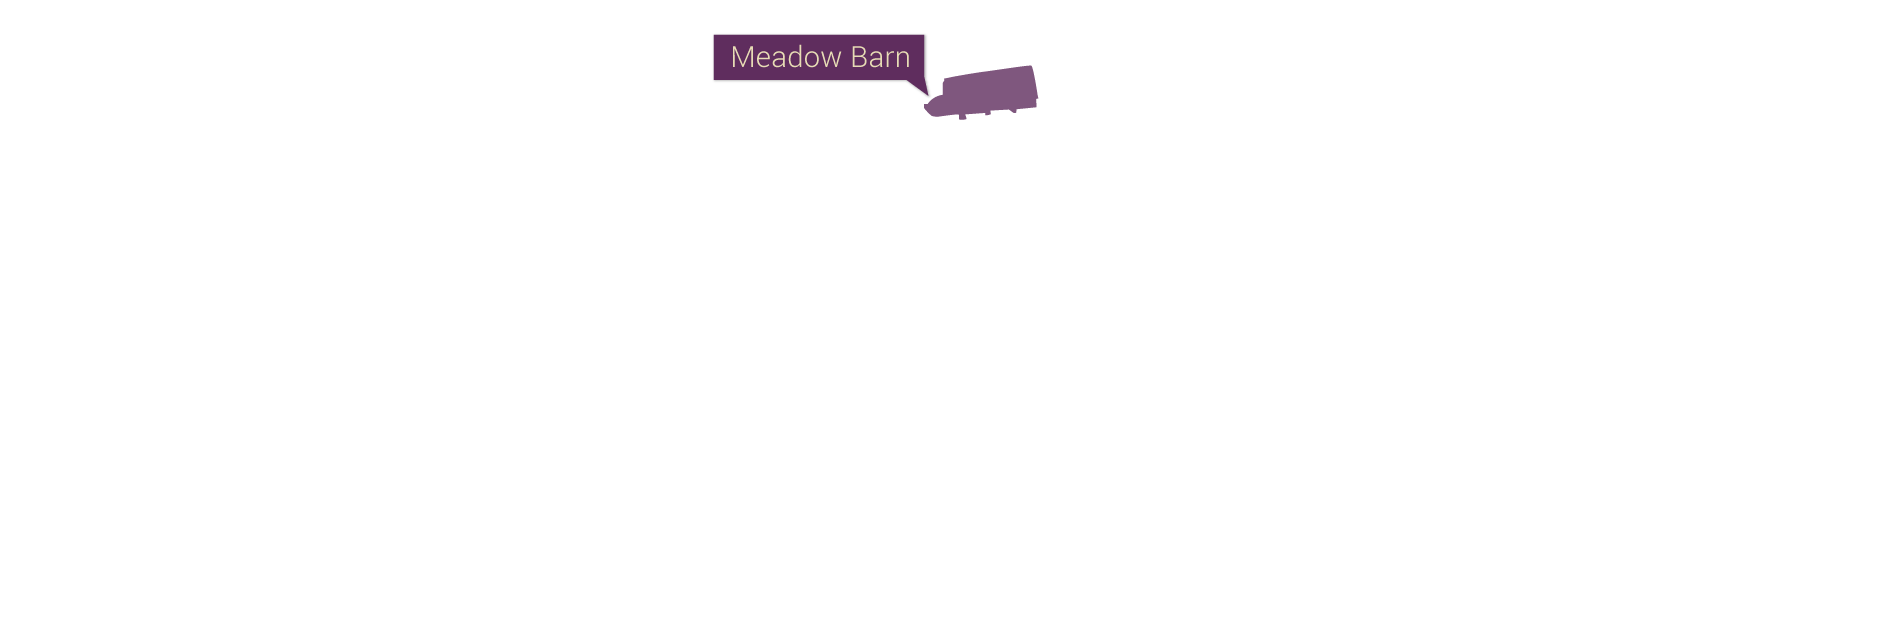 meadowBarn